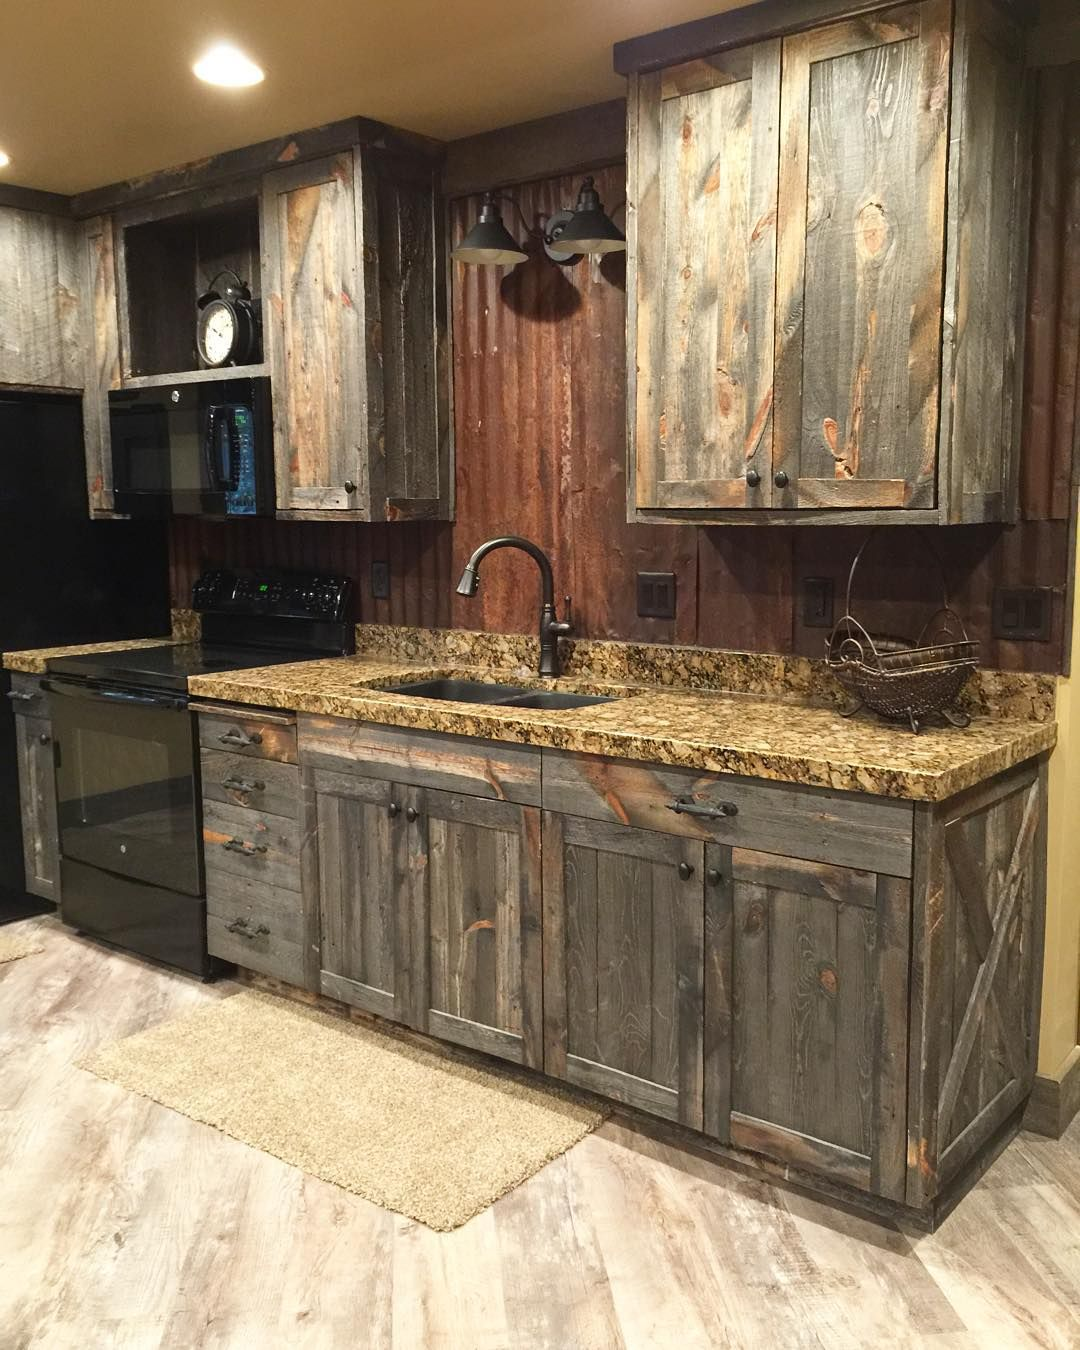 Barn Kitchen A Little Barnwood Kitchen Cabinets And Corrugated Steel Backsplash